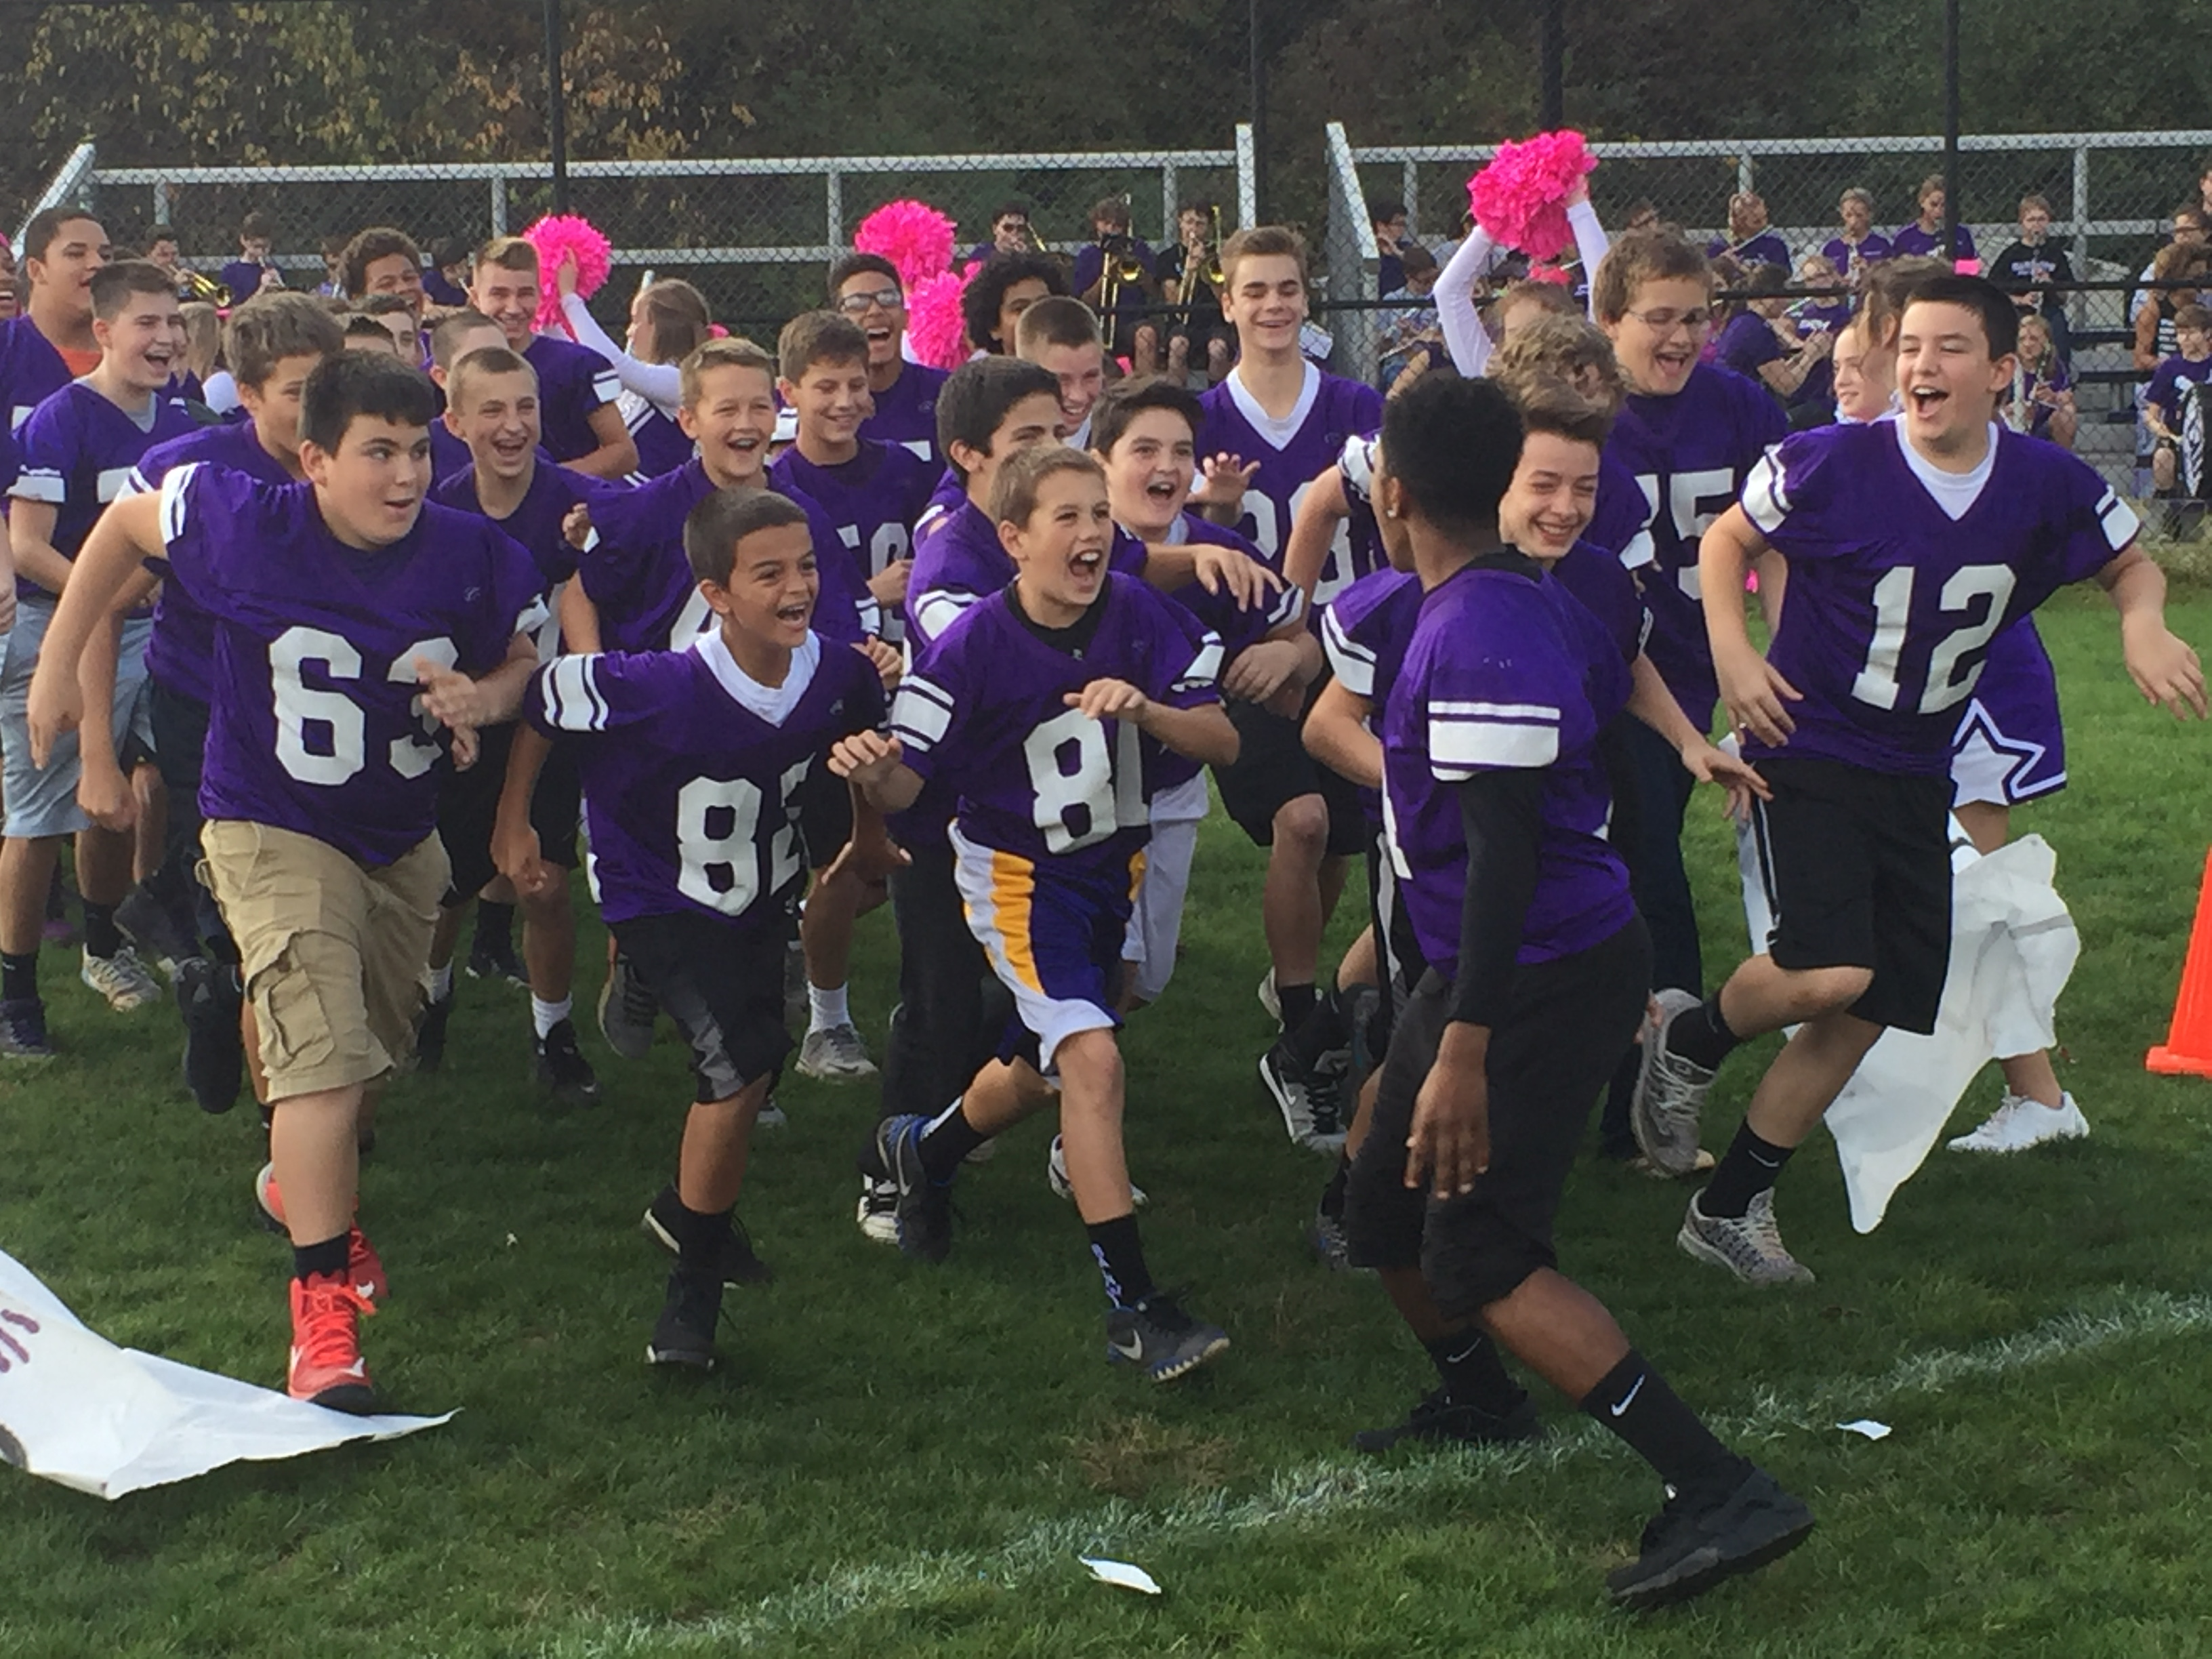 Football team running through a banner on a pep rally day.